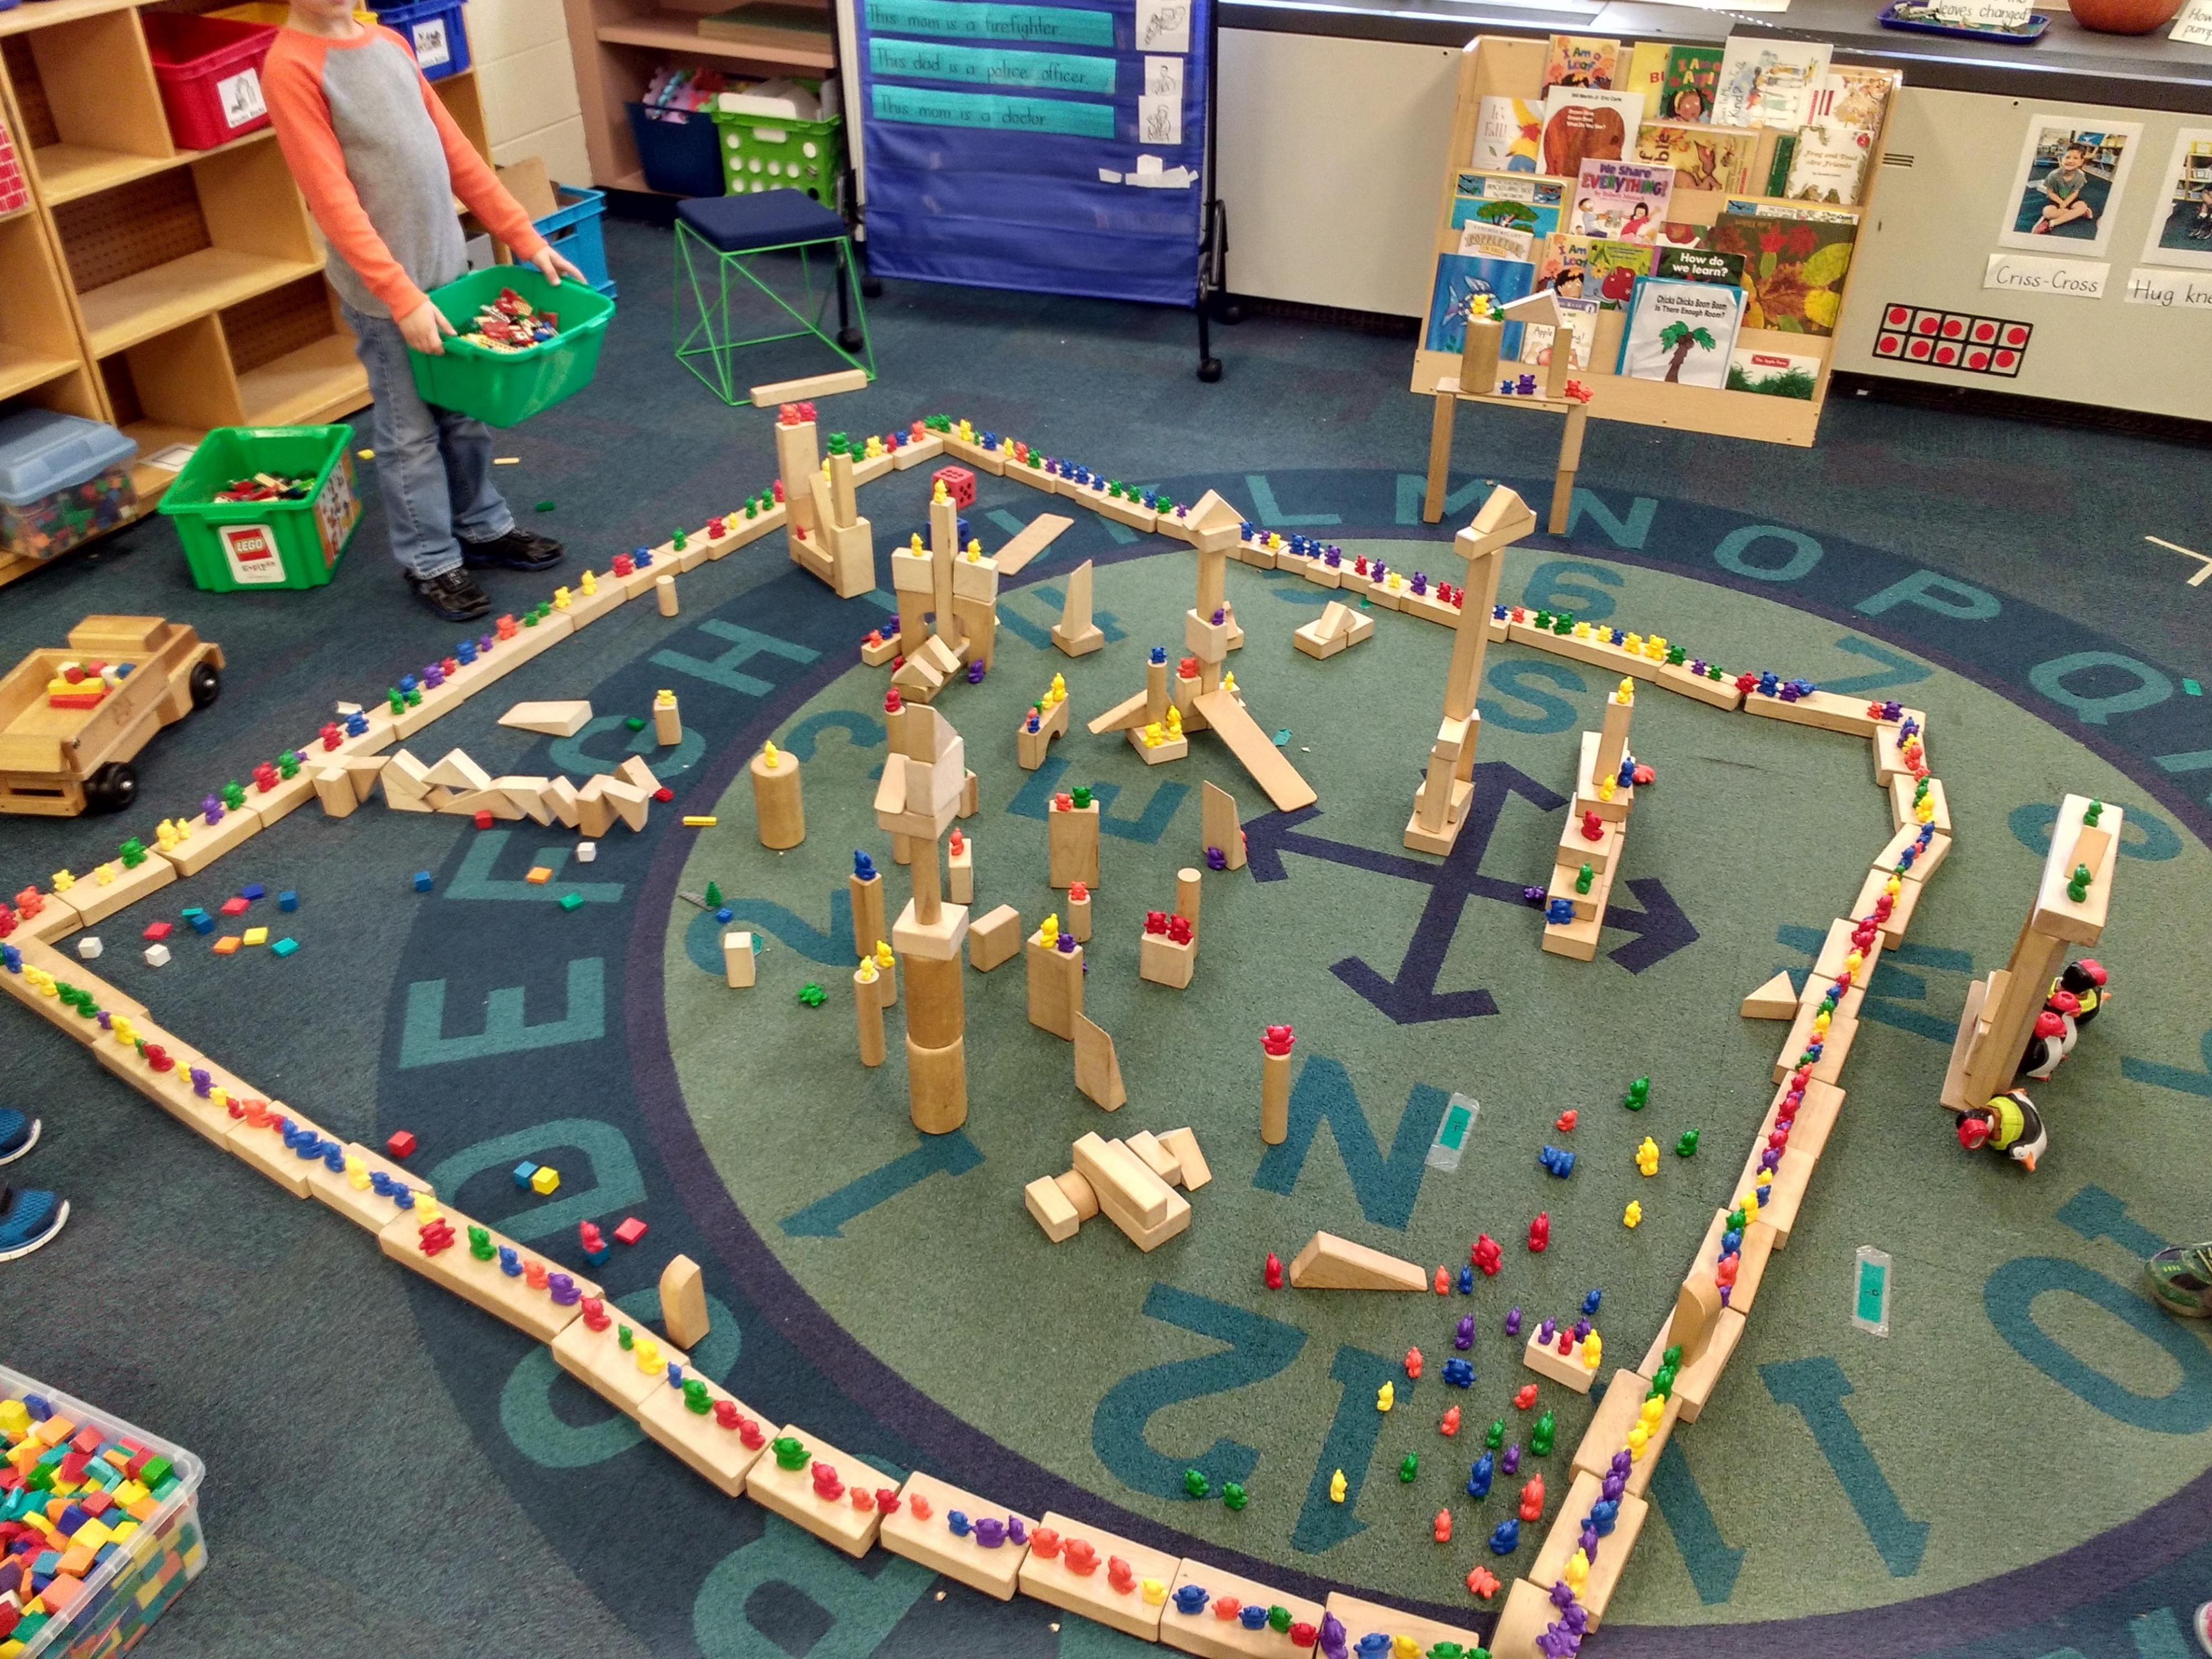 Children pull items from a variety of centers to create this elaborate structure.